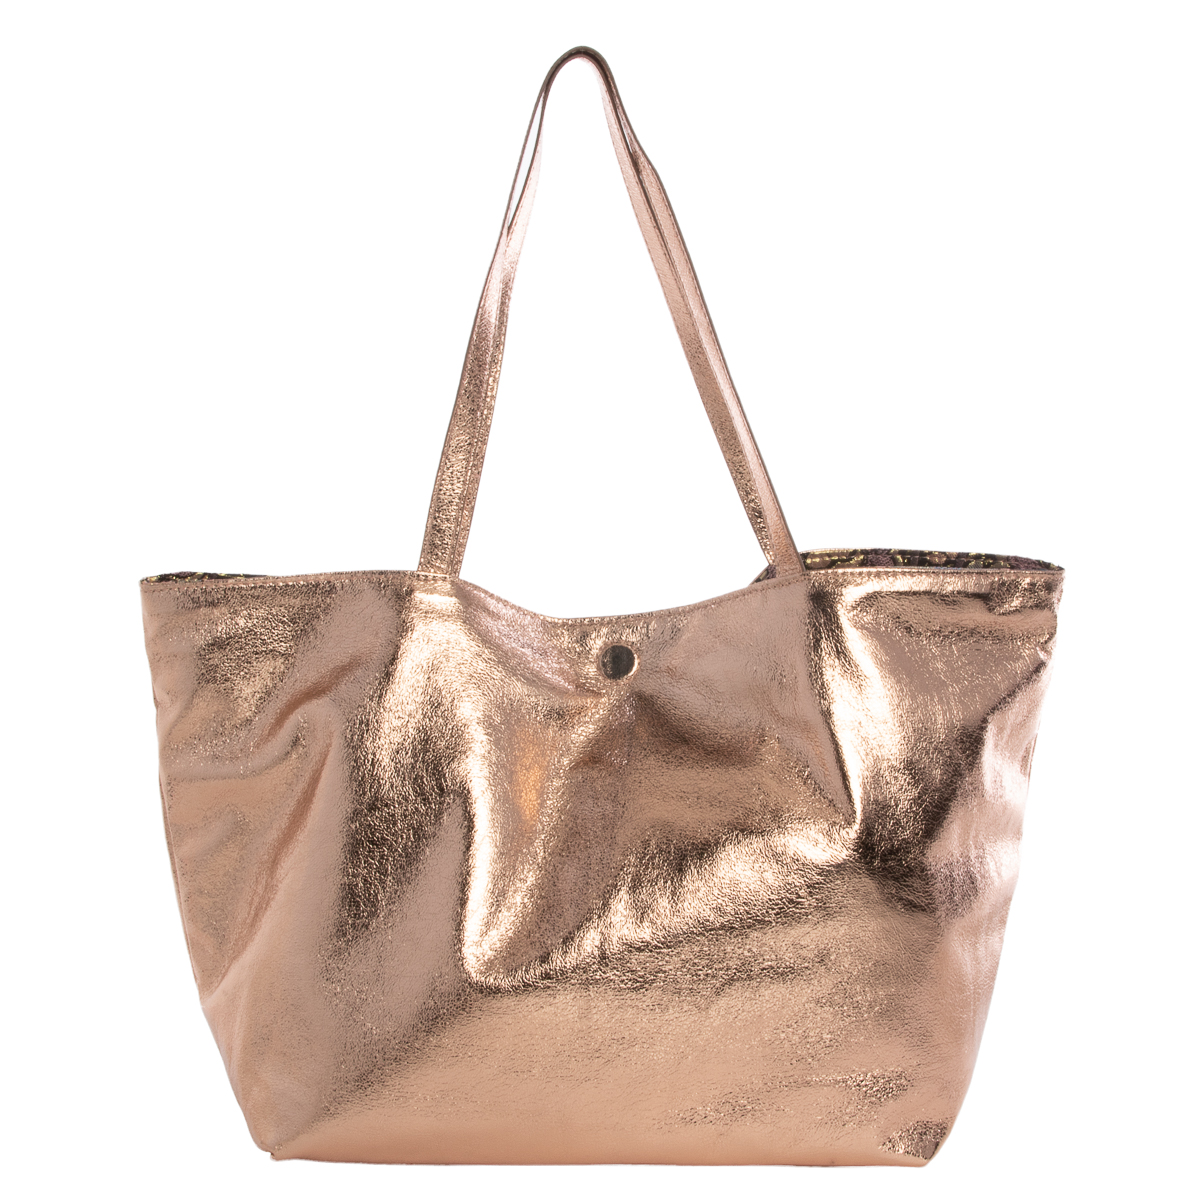 Steve-Madden-Handbags-For-Women-Tote-Bag-Reversible-with-Zip-Clutch-Purse thumbnail 18